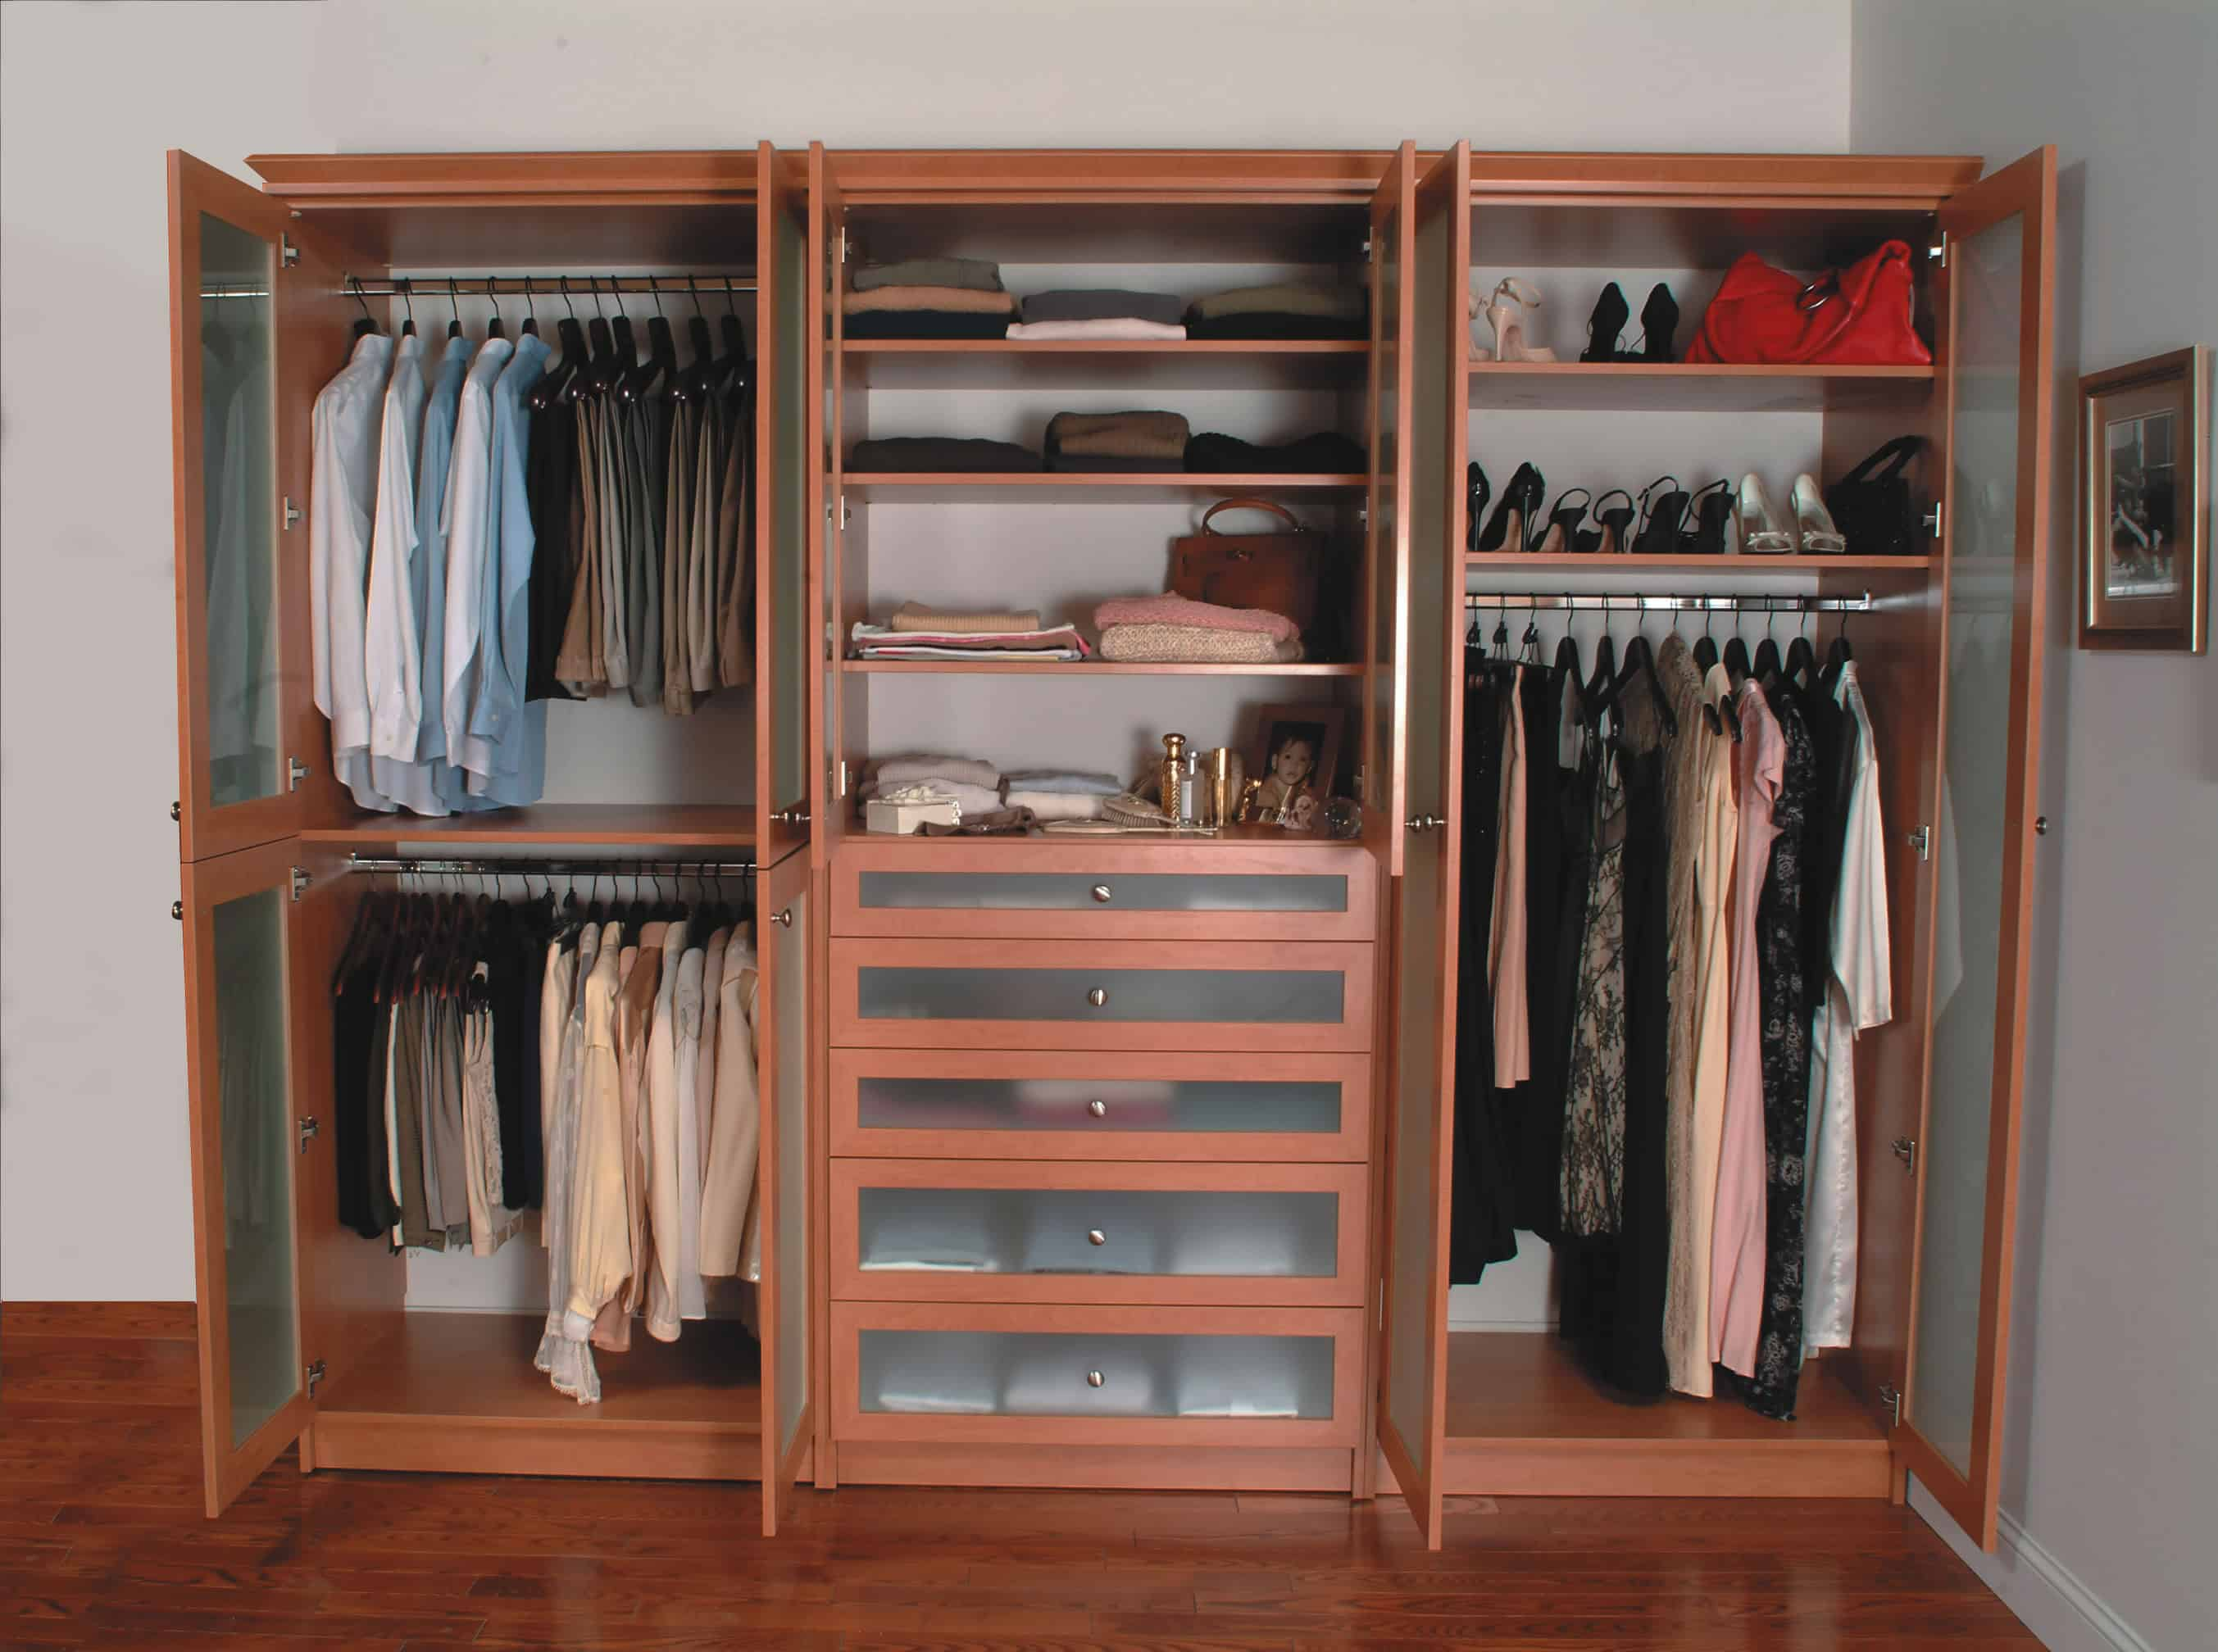 Small reach-in closet with drawers in the middle, clothing racks, and shoes storage.